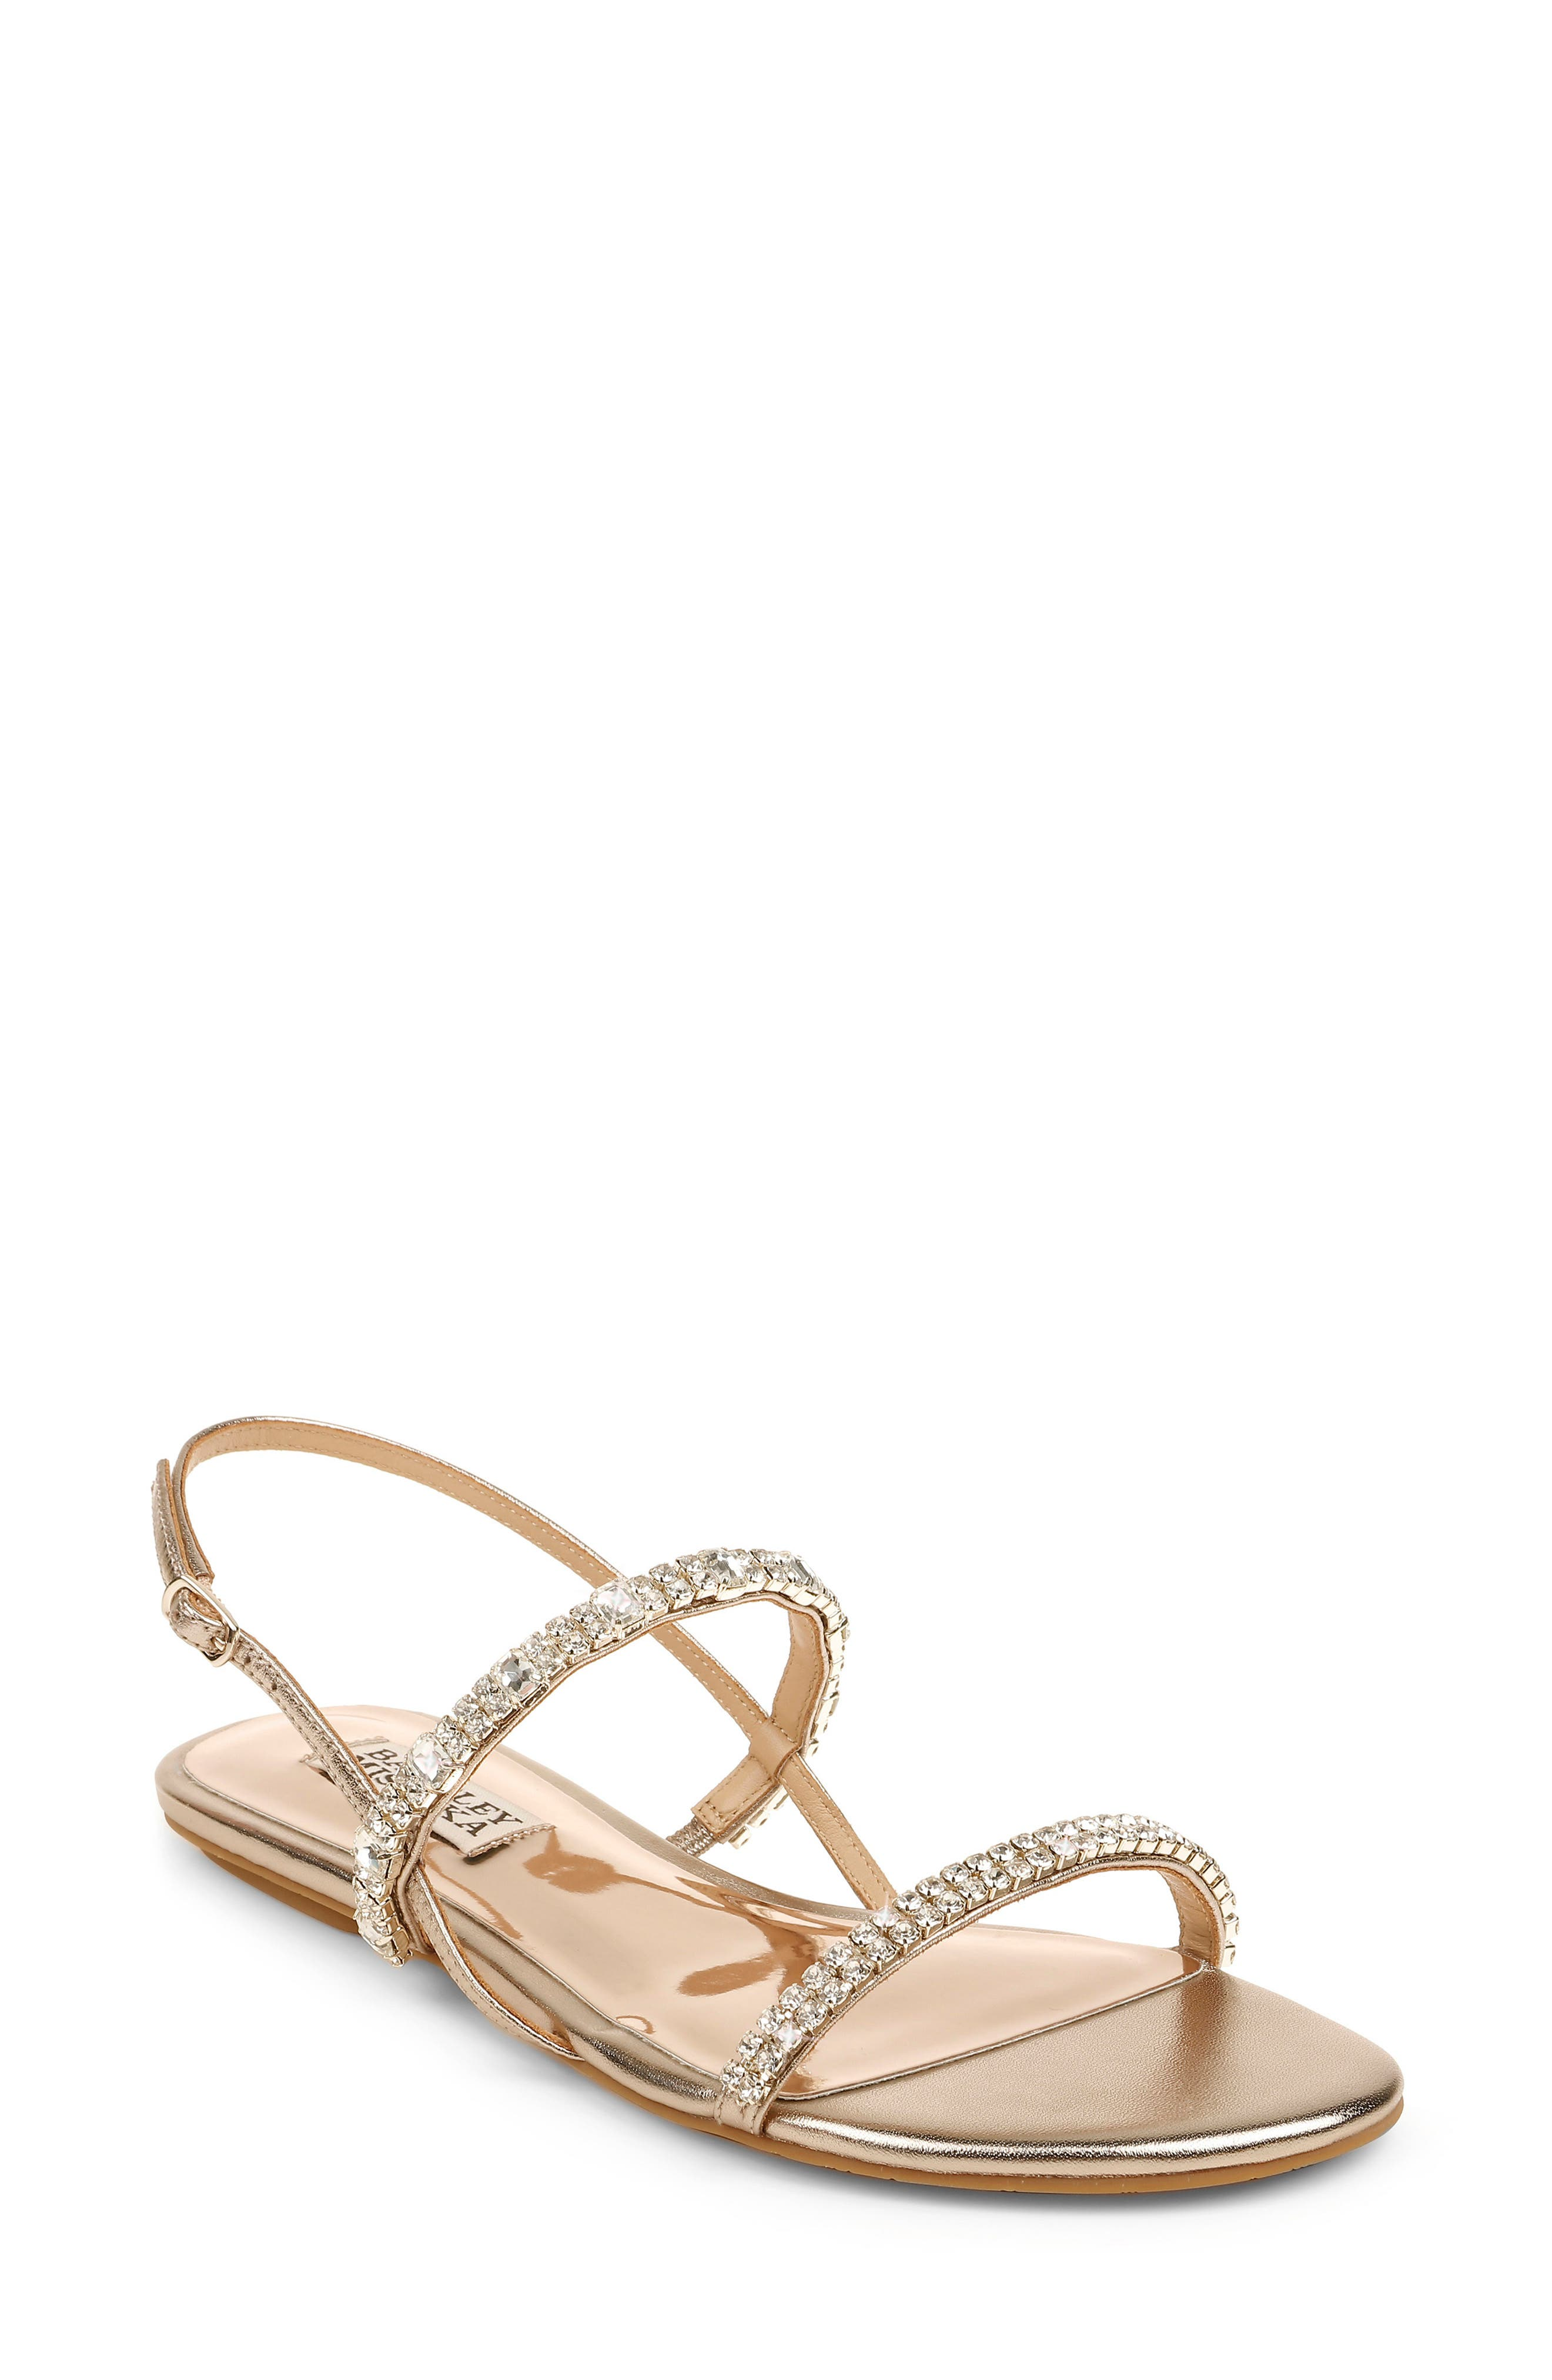 Sparkling crystals twinkle at the straps of an elegant, event-worthy sandal secured by a slim buckle at the ankle. Style Name: Badgley Mischka Zandra Embellished Sandal (Women). Style Number: 6020307 1. Available in stores.